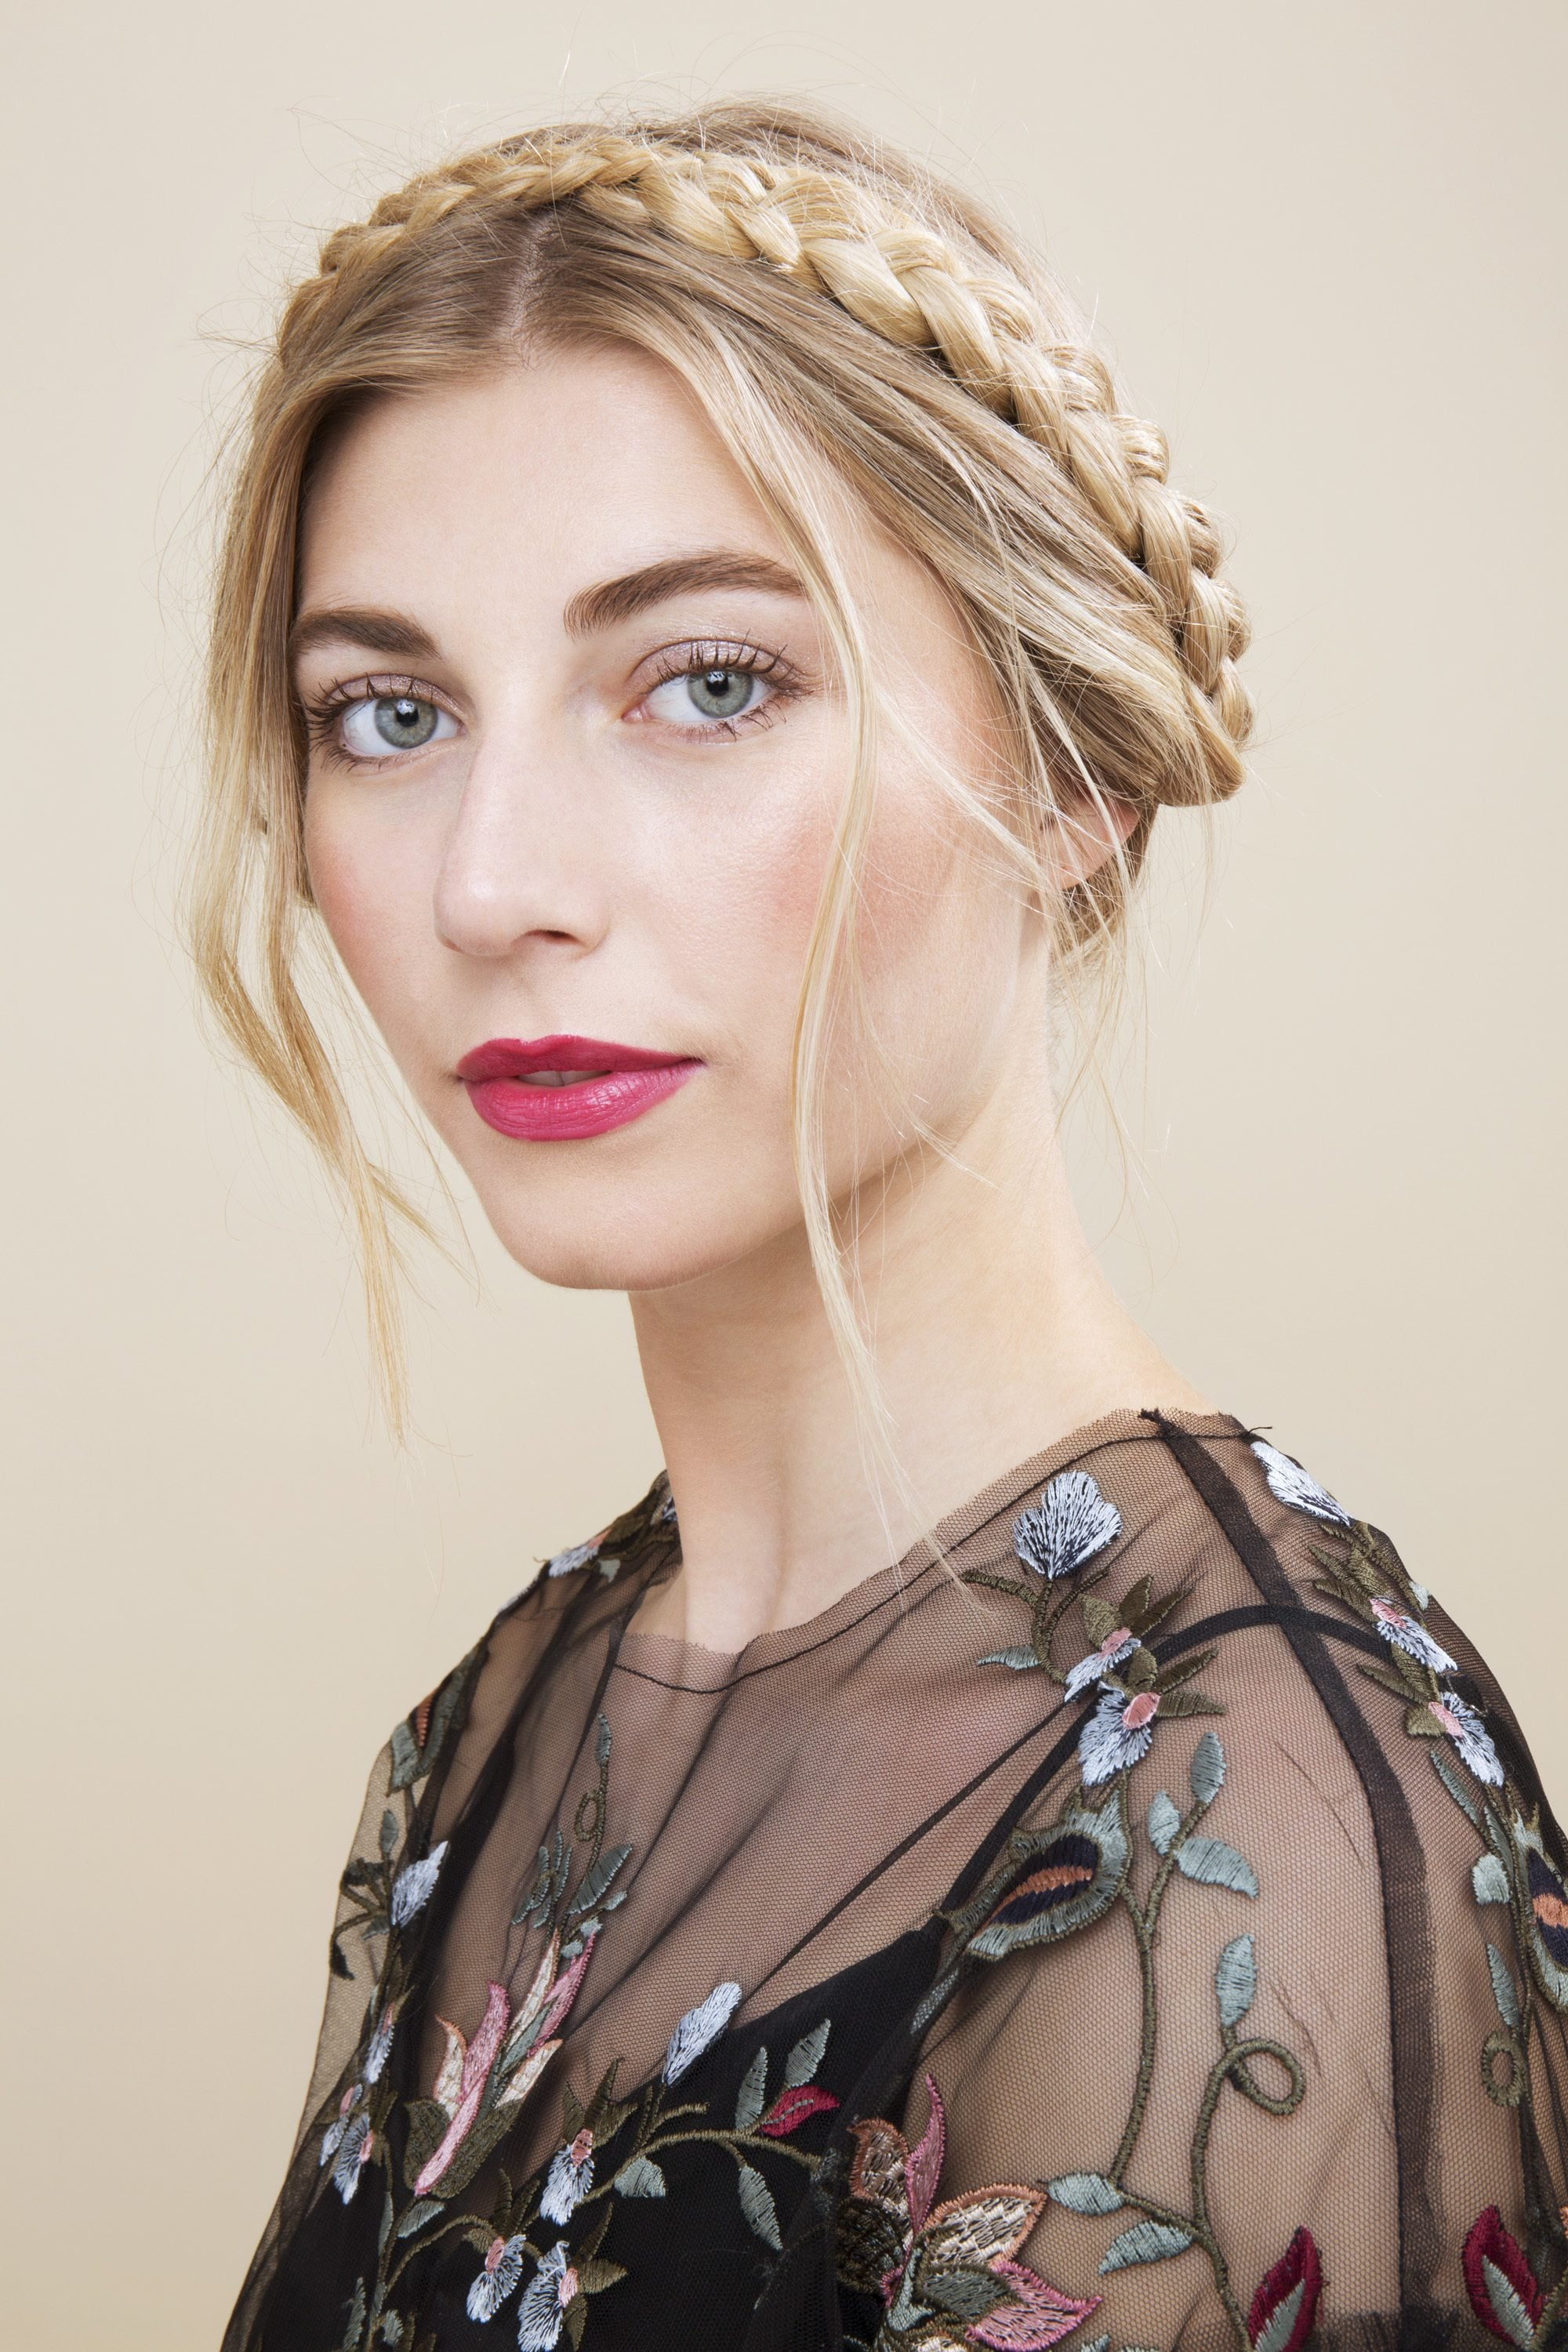 blonde model with long straight hair styled into milkmaid braids with loose strands falling along the hairline wearing black floral sheer top